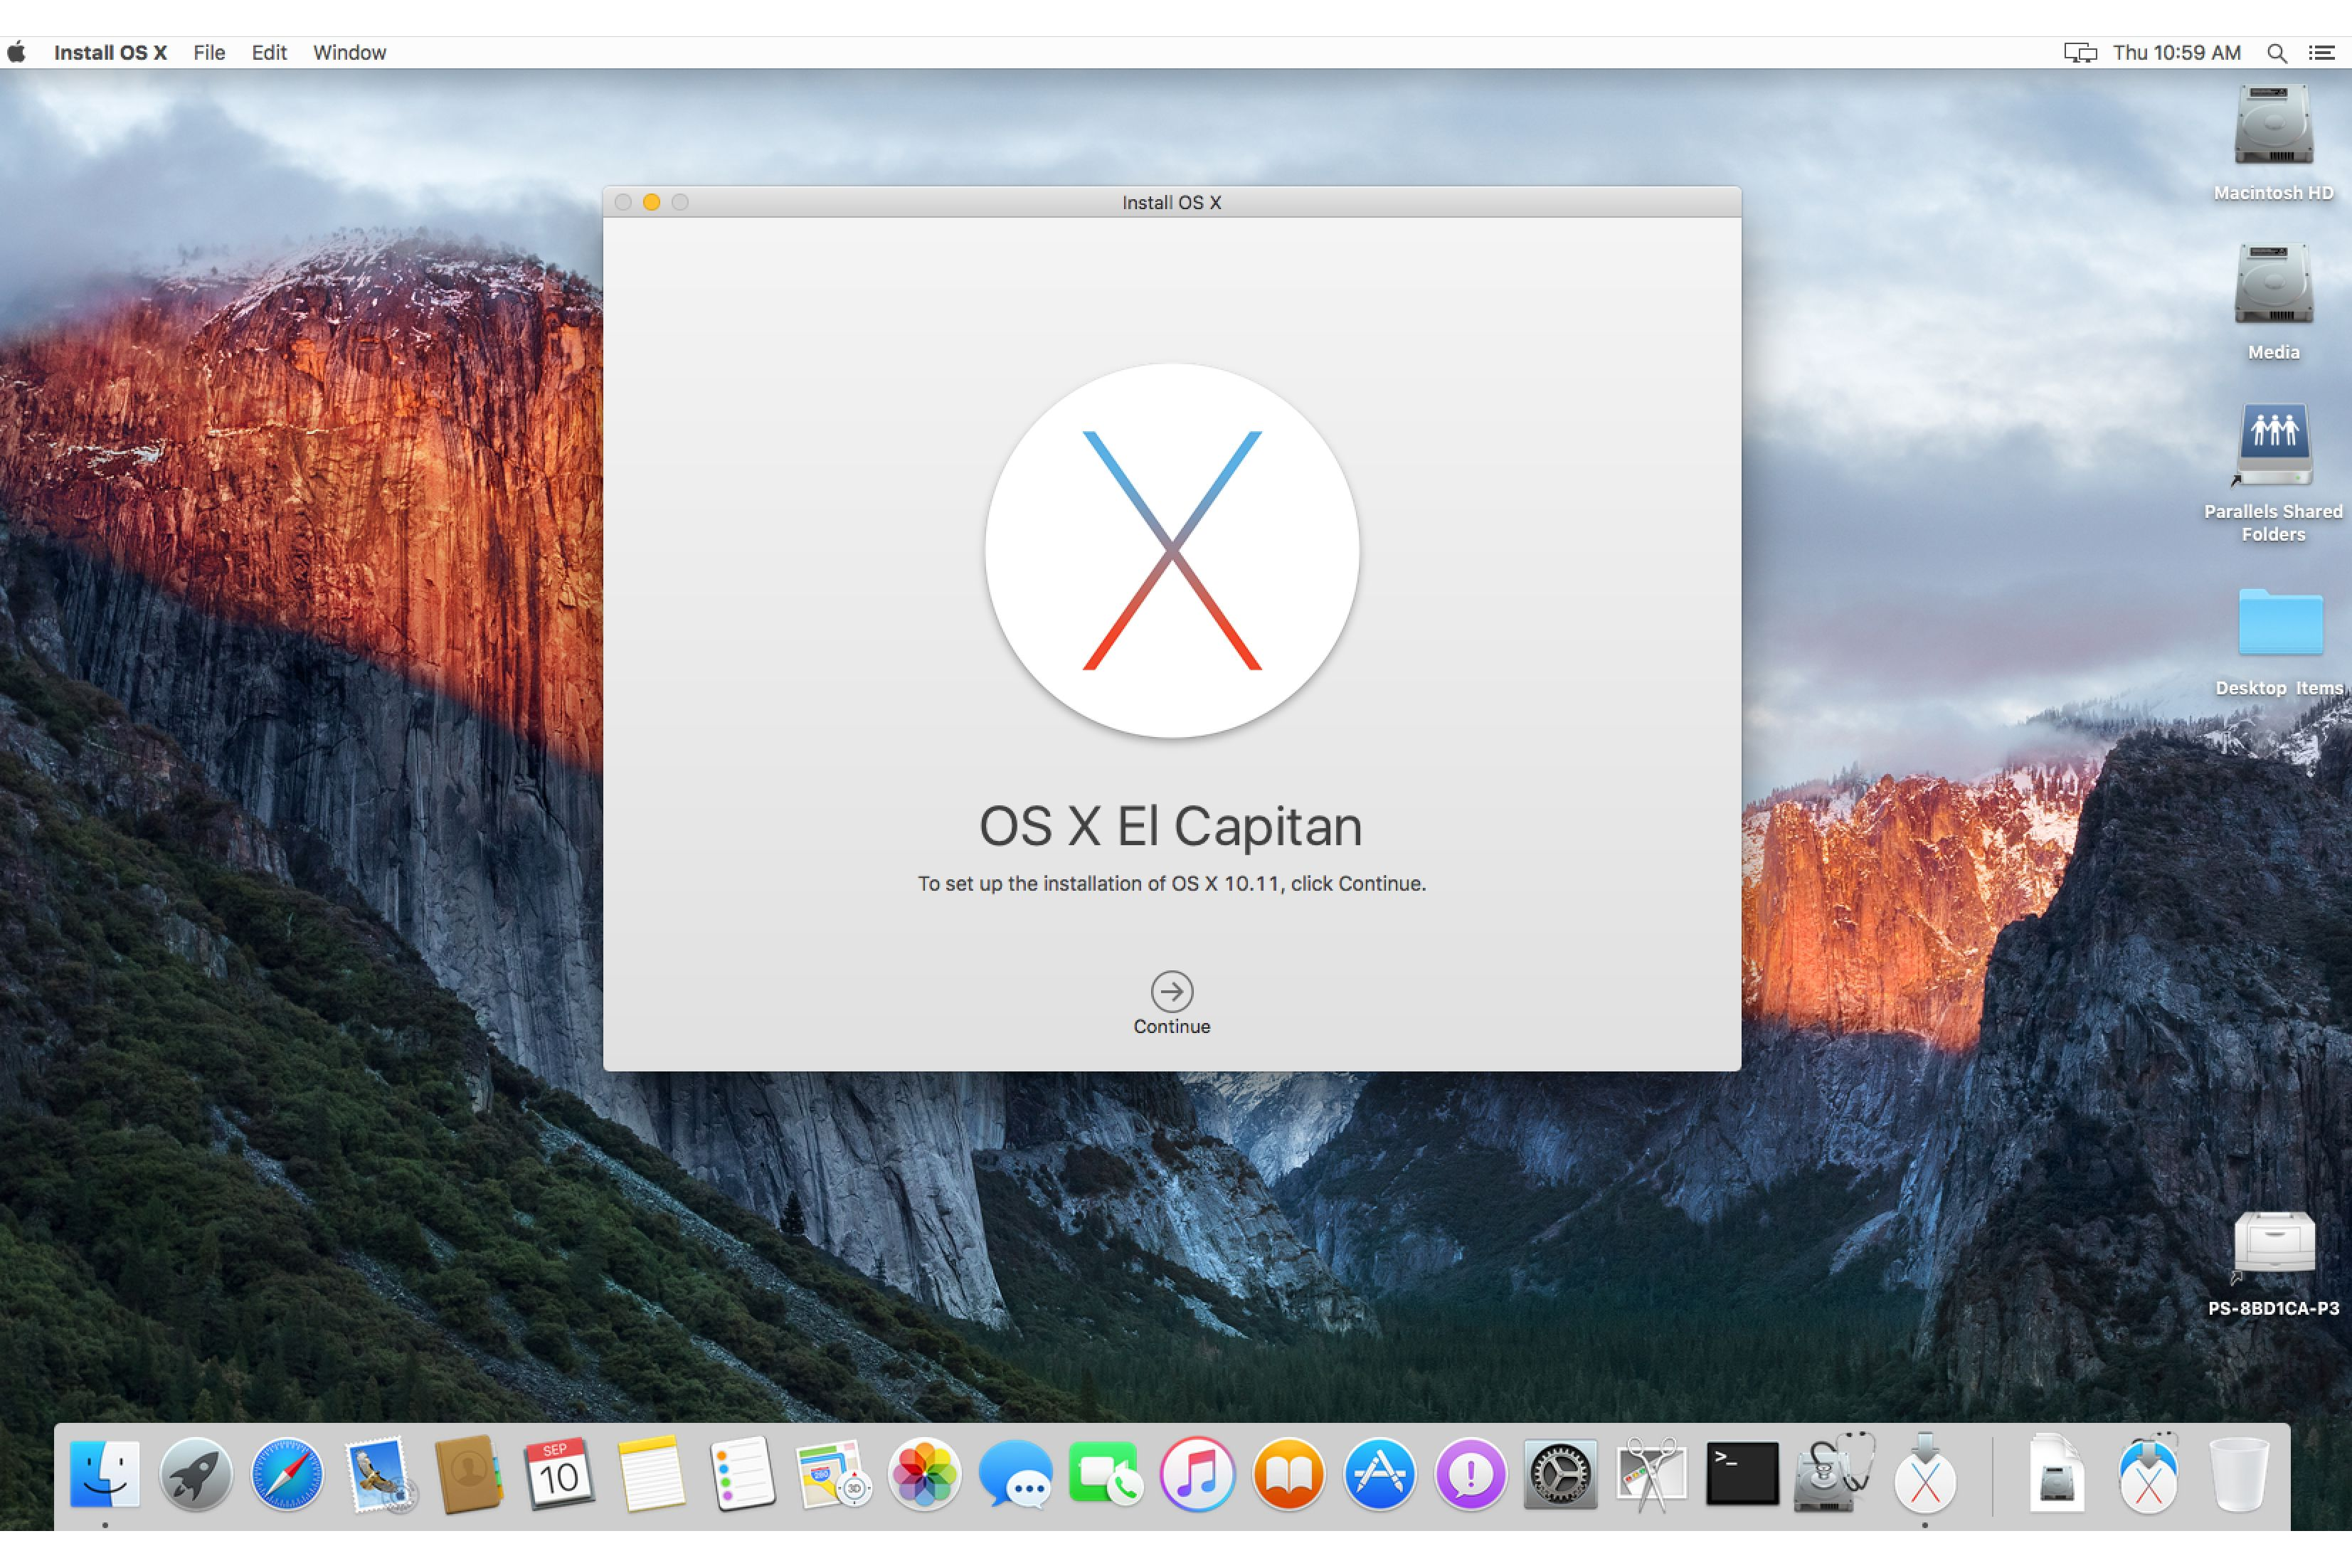 How to Upgrade Install OS X El Capitan on Your Mac